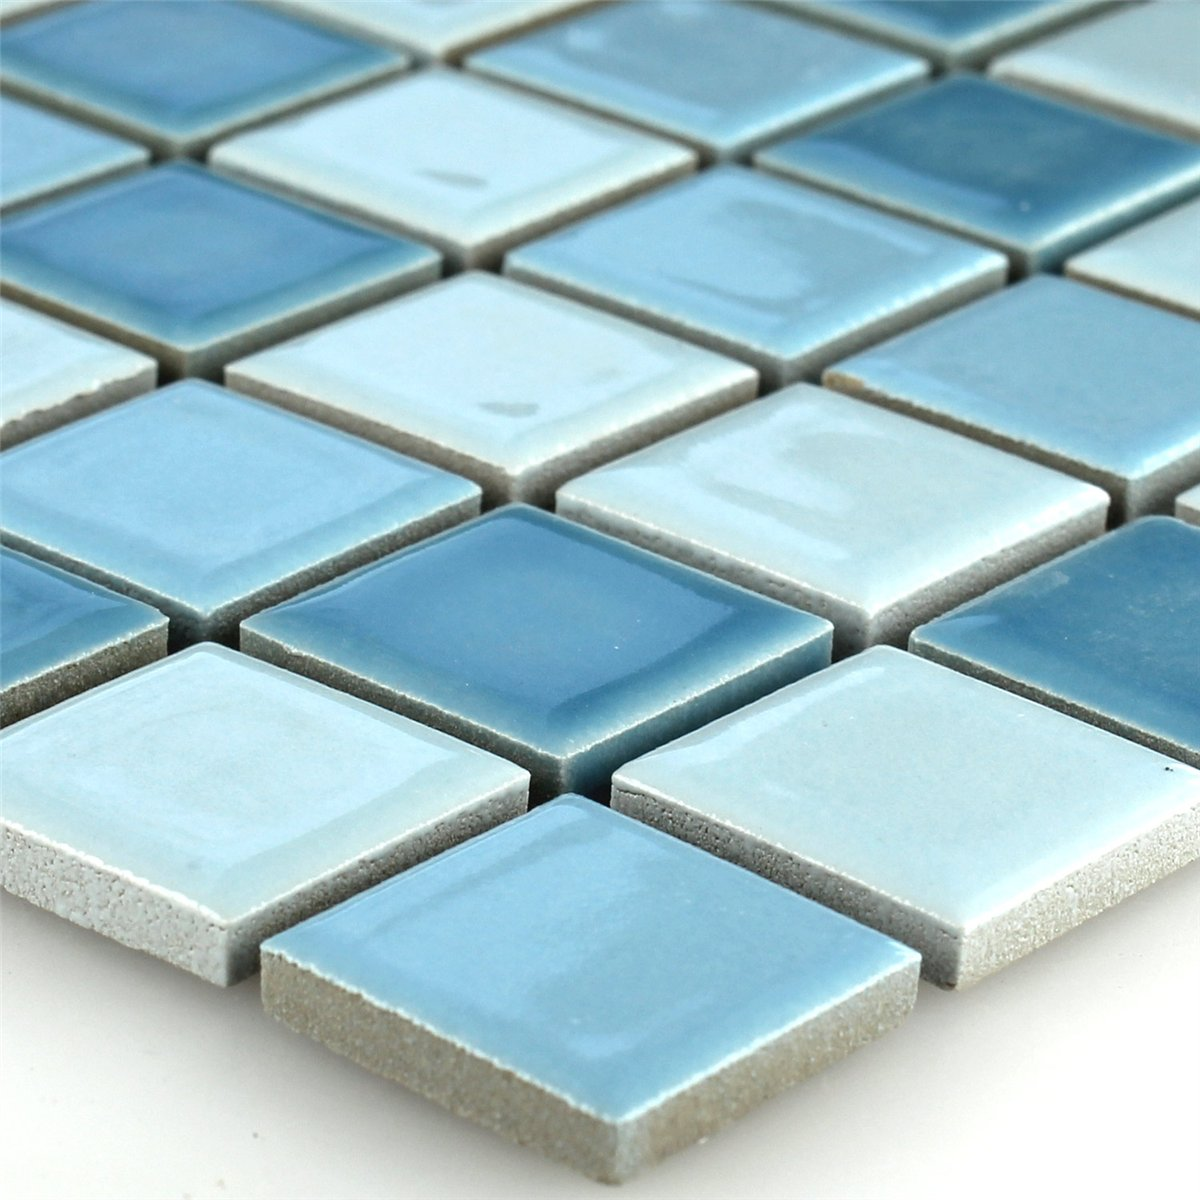 keramik mosaik fliesen mosaikfliese blau mix 25x25x5mm ebay. Black Bedroom Furniture Sets. Home Design Ideas